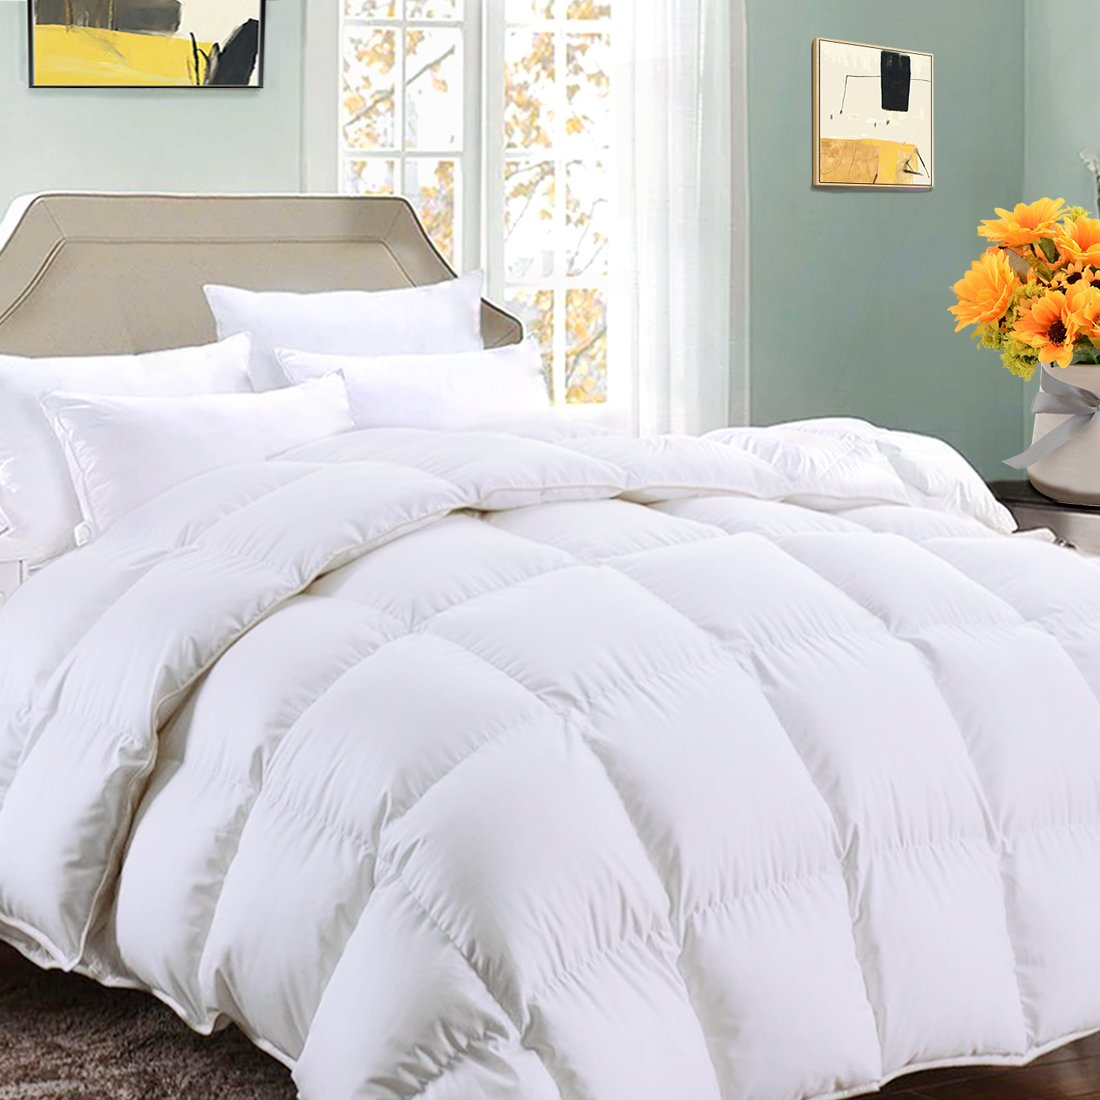 Queen Comforter Soft Summer Cooling Goose Down Alternative Duvet Insert 2100 Hypoallergenic Quilt with Corner Tab for all Season, Prima Microfiber Filled Reversible Hotel Collection,White,88 X 88 inch